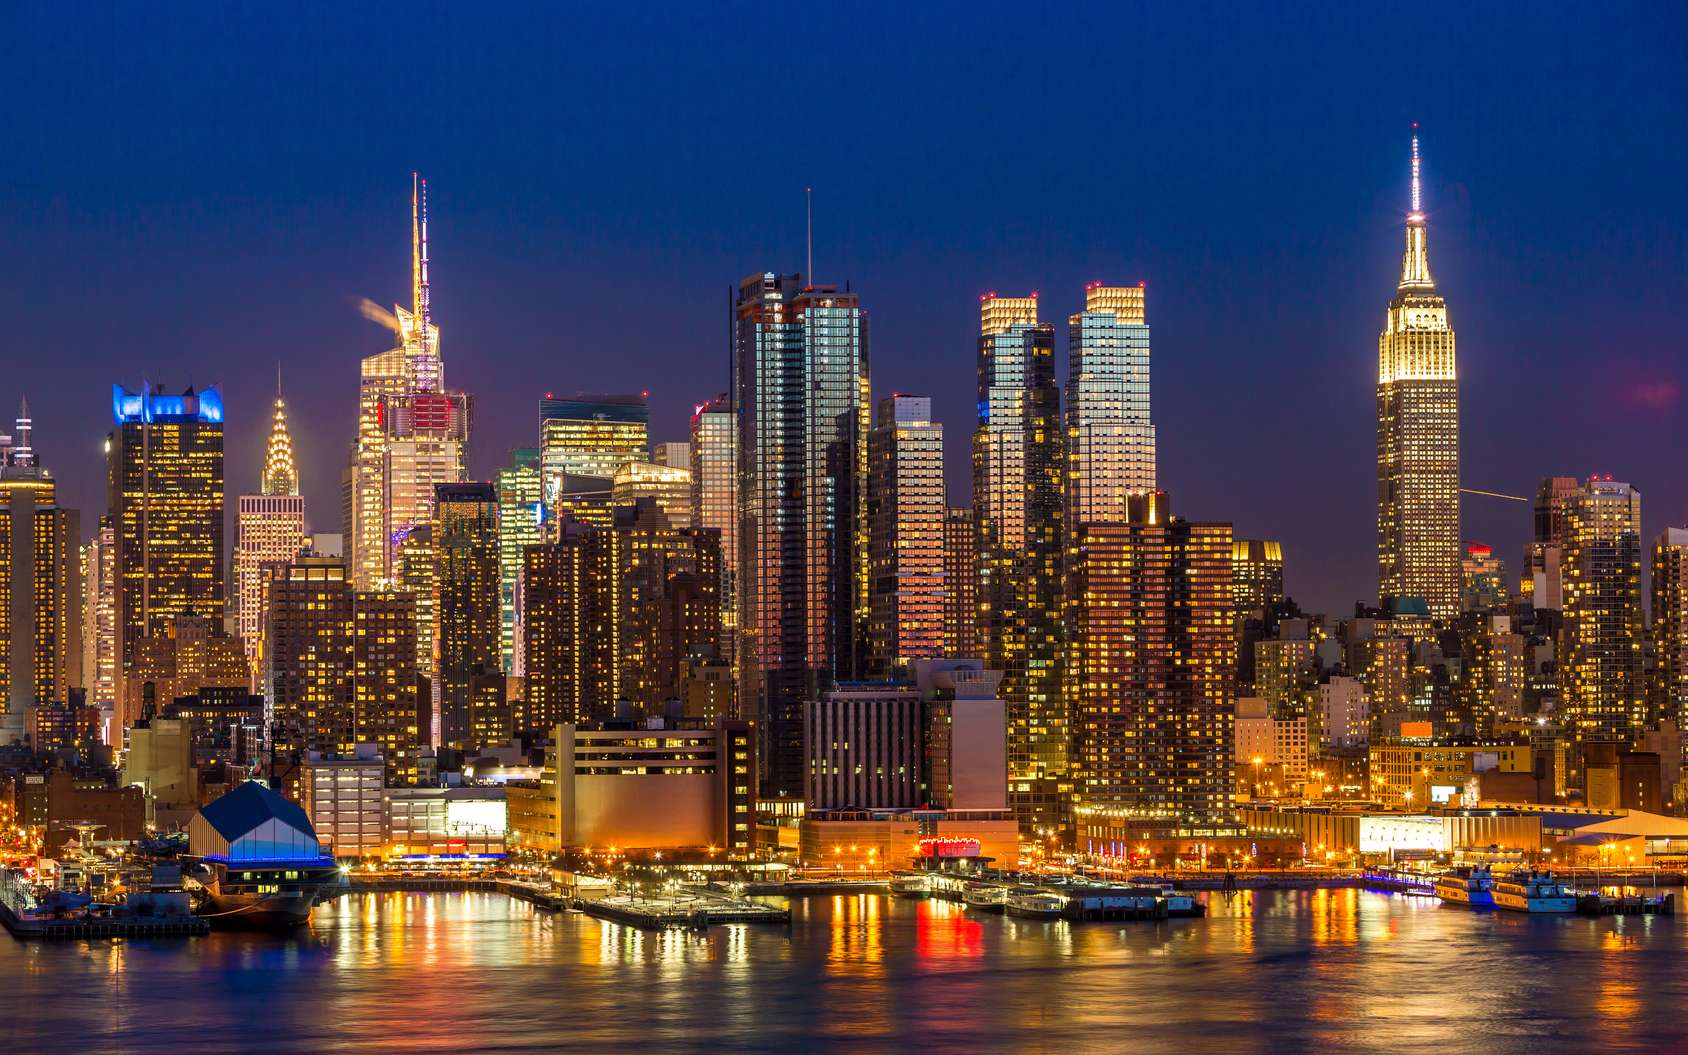 La mythique skyline de New York. © blvdone, fotolia